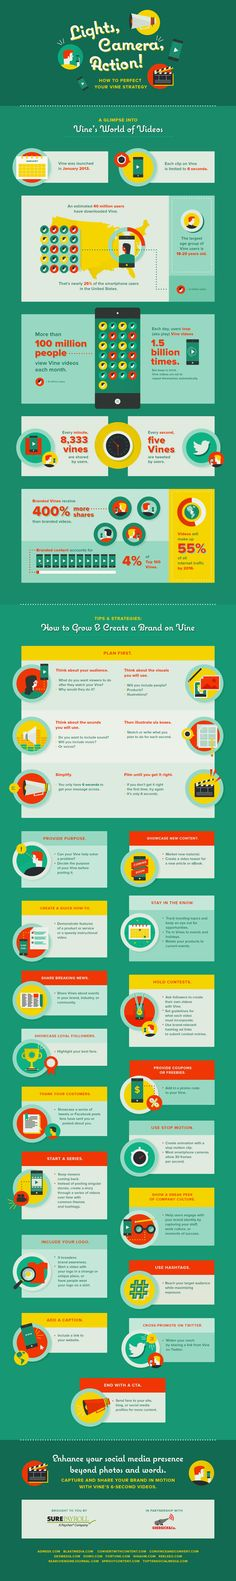 Lights, Camera, Action! How to Perfect Your Vine Strategy #infographic #Vine #SocialMedia